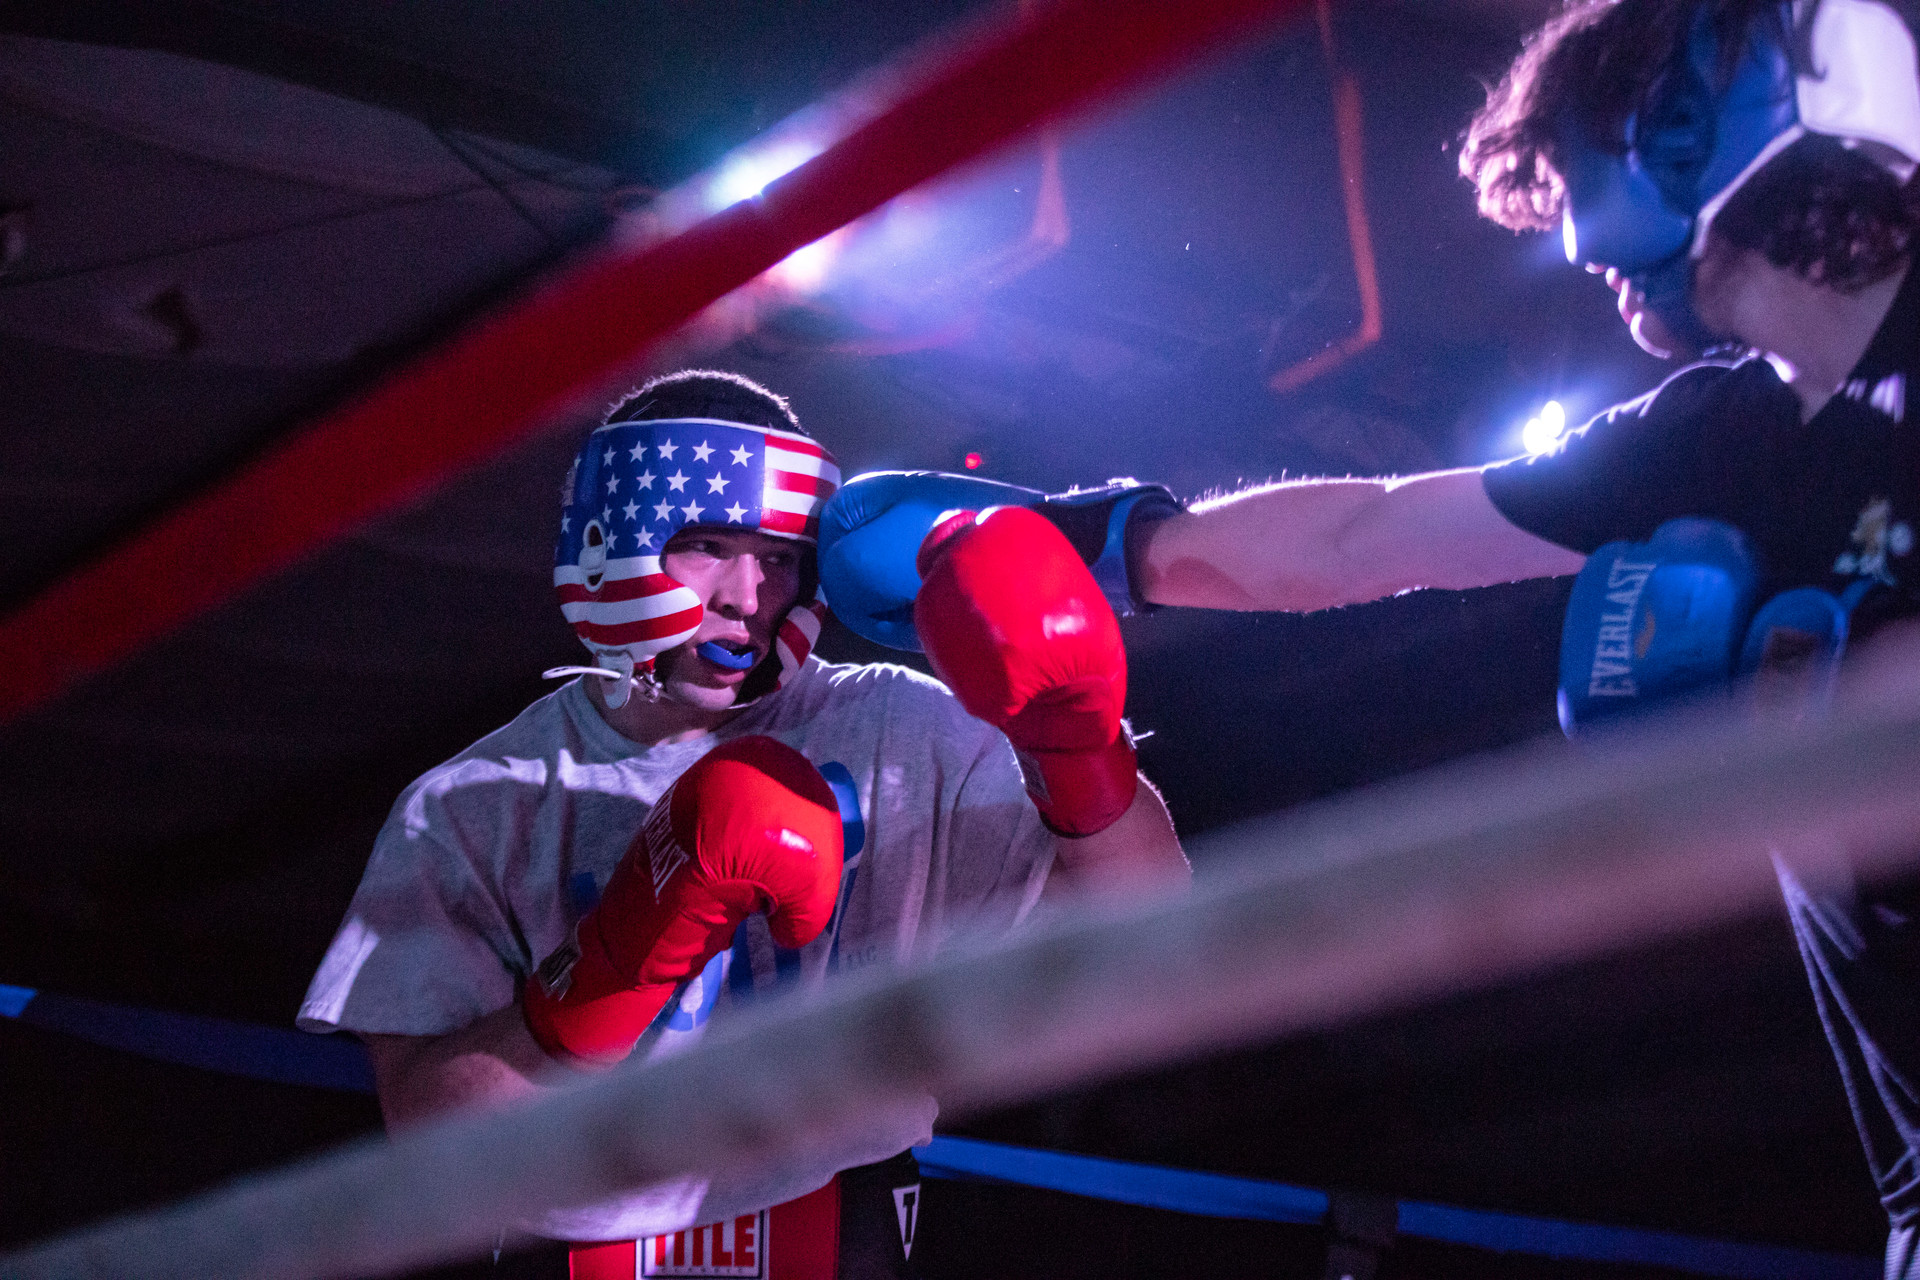 Garrett Strickler, a member of the Sigma Chi fraternity at Western Kentucky University, participates in his first Fight Night on Saturday, April 7th, 2019 in Bowling Green, Kentucky. Fight Night is a boxing event hosted by the Sigma Chi fraternity chapter at Western Kentucky University in order to raise money for cancer research.